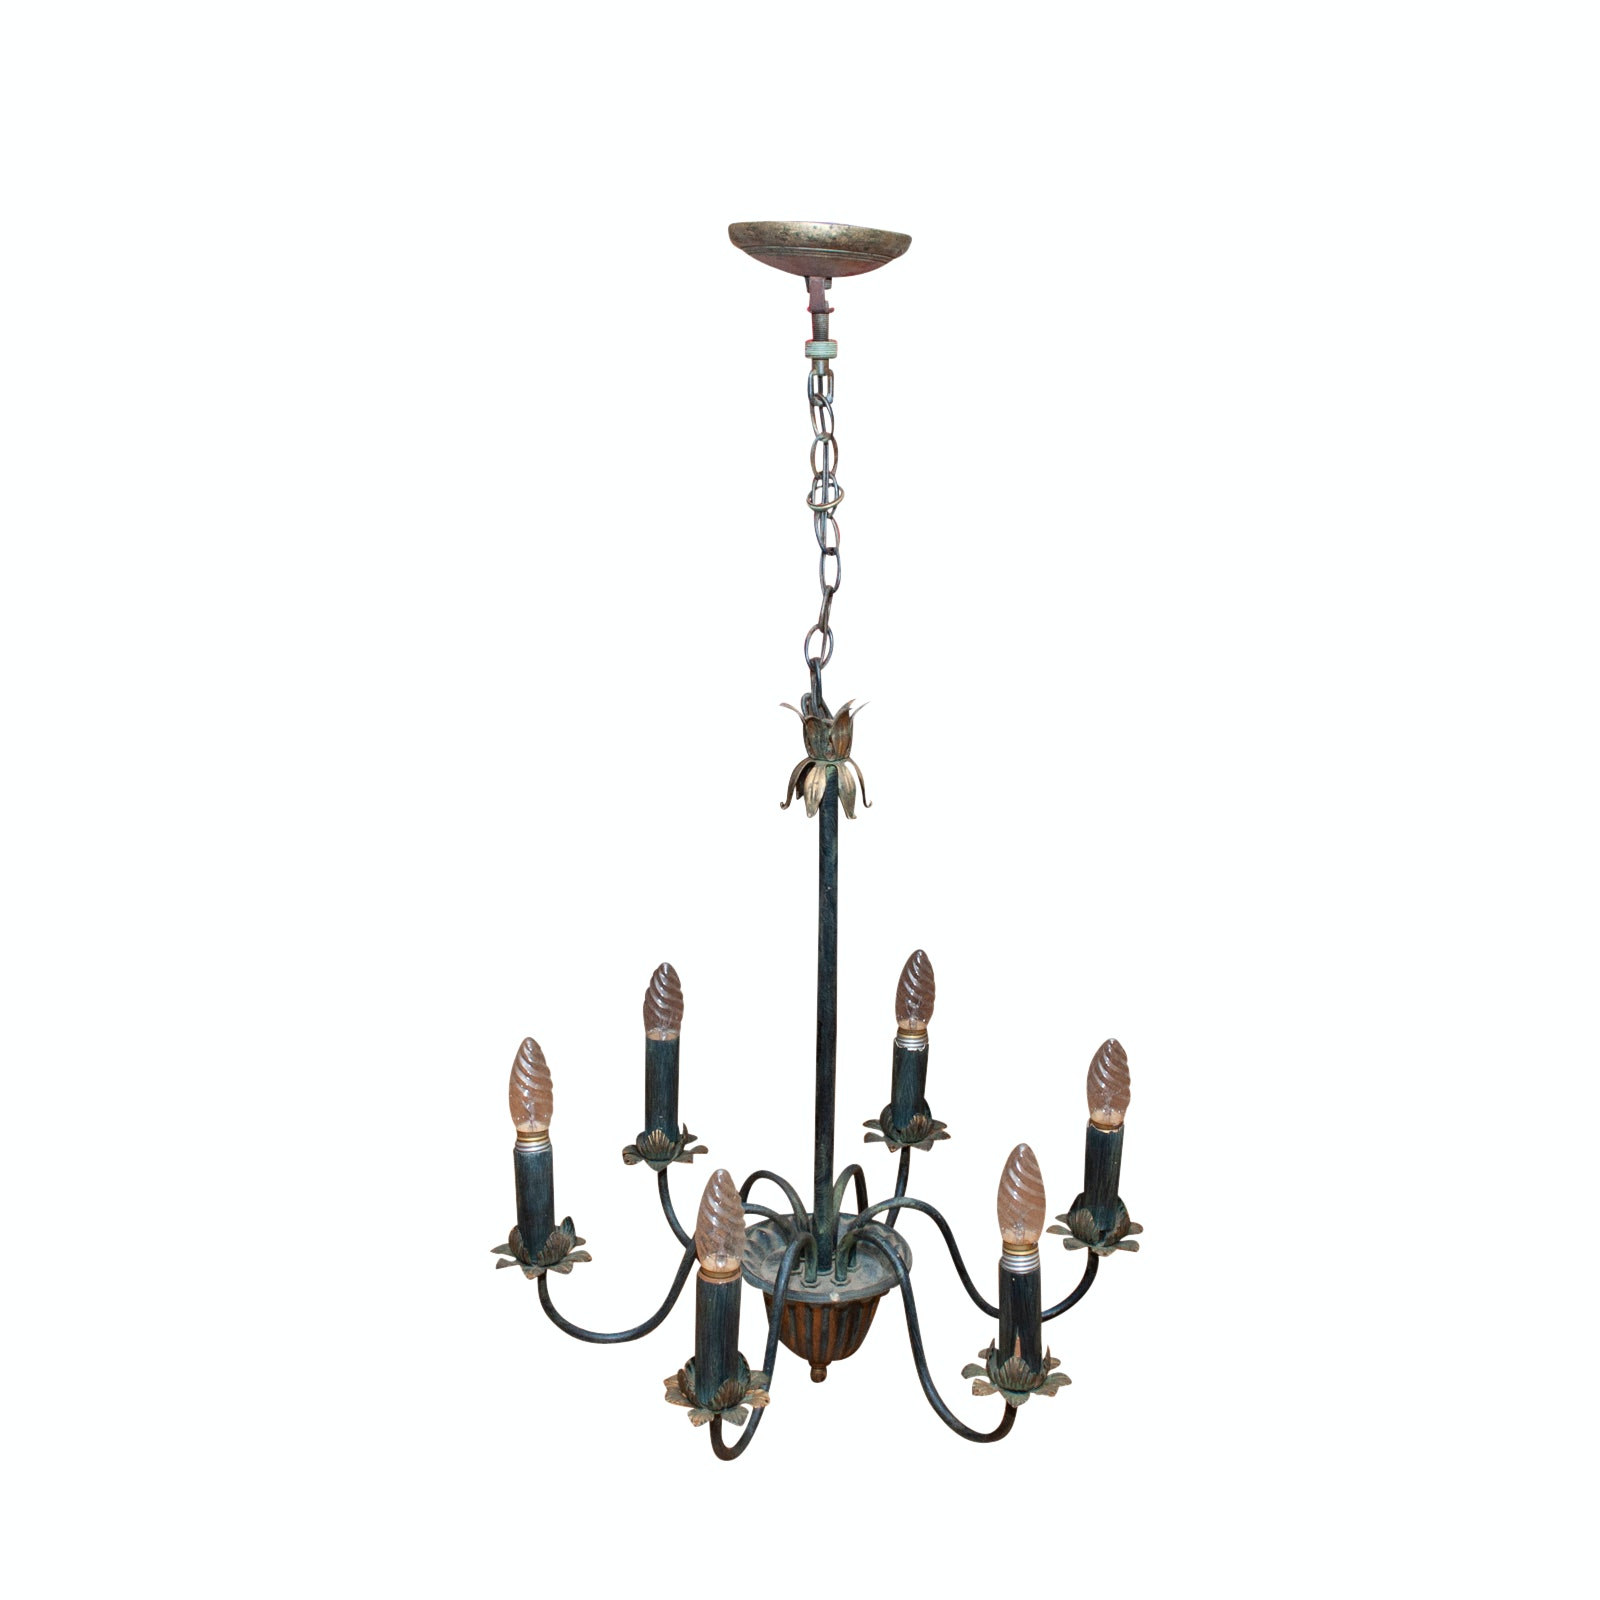 Antique Floral and Foliate Brass Chandelier